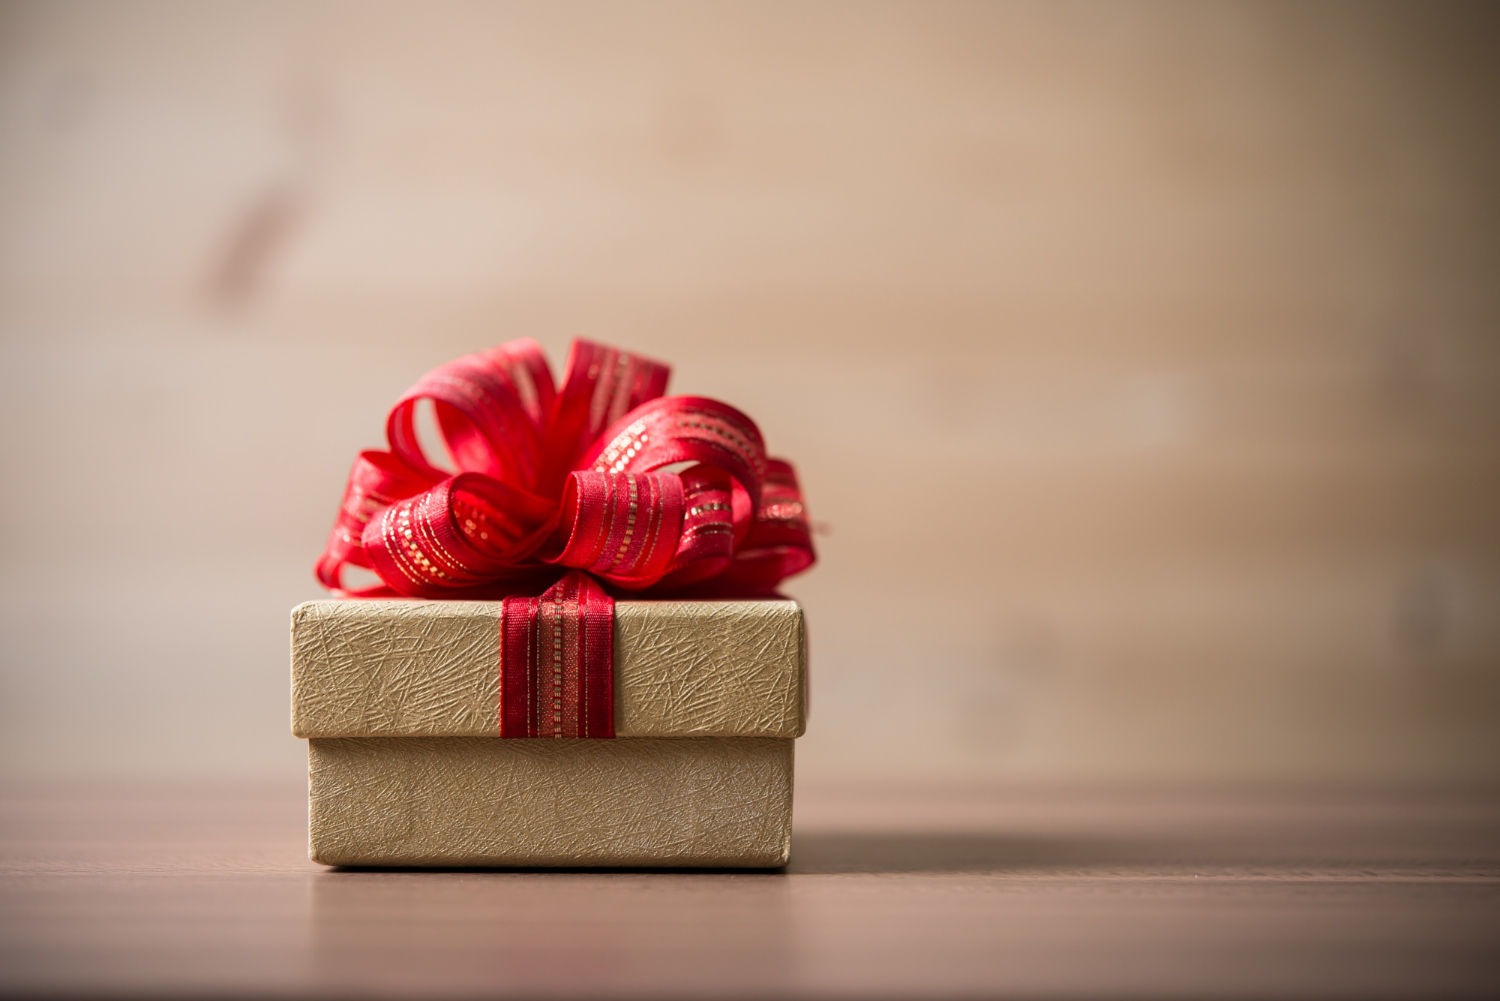 Send Gifts Online To Find The Perfect Gifts Every Time